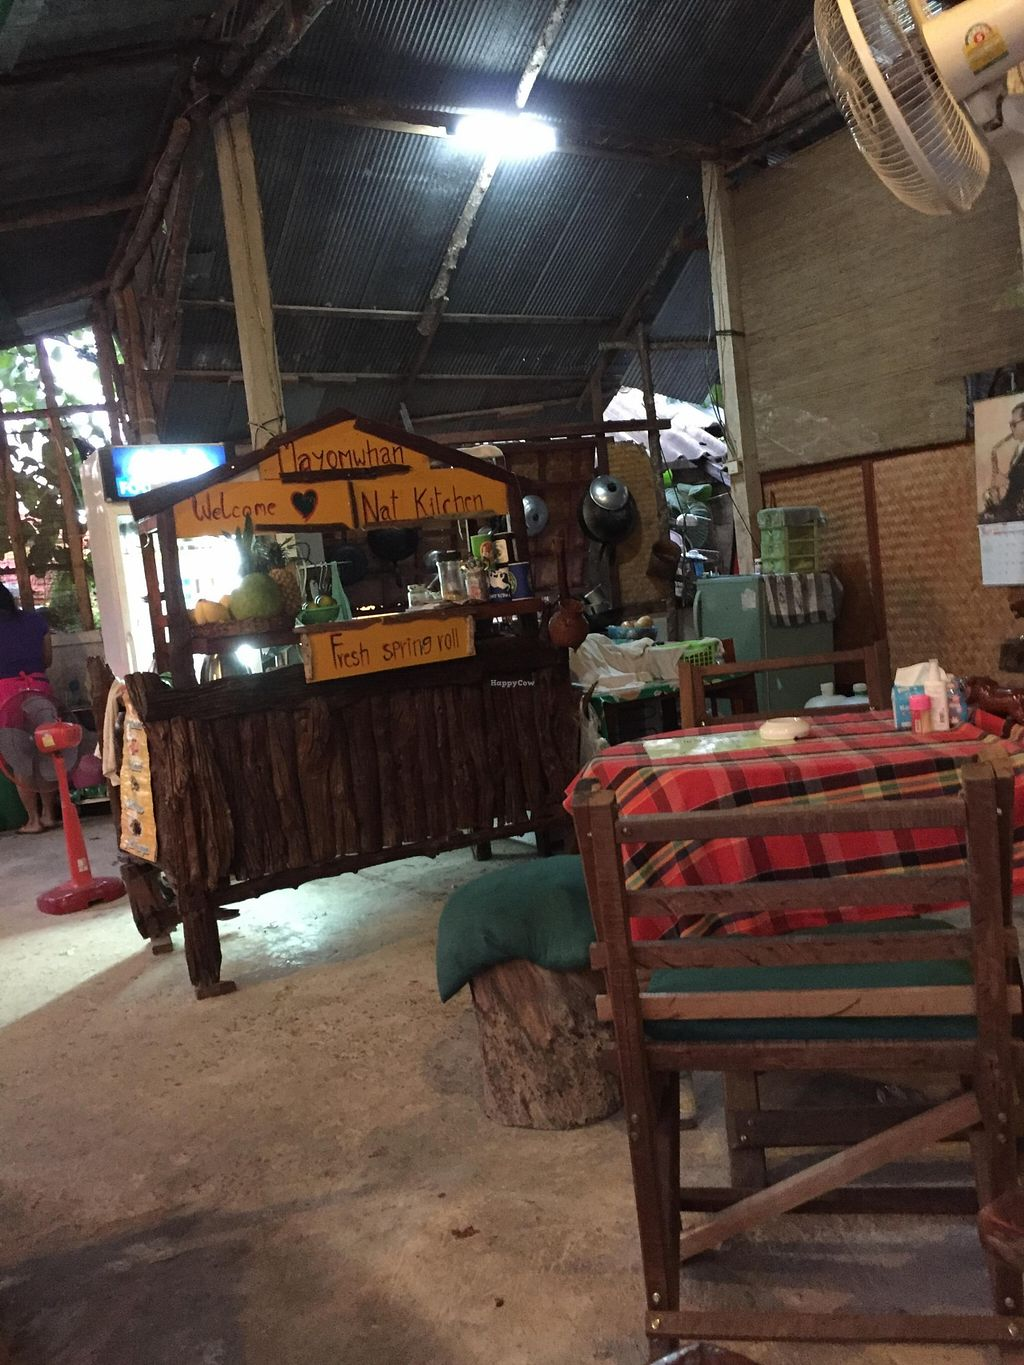 """Photo of CLOSED: Mayomwhan Nat's Kitchen  by <a href=""""/members/profile/Rocker"""">Rocker</a> <br/>Where Nat does the great cooking! <br/> November 16, 2015  - <a href='/contact/abuse/image/65791/125212'>Report</a>"""